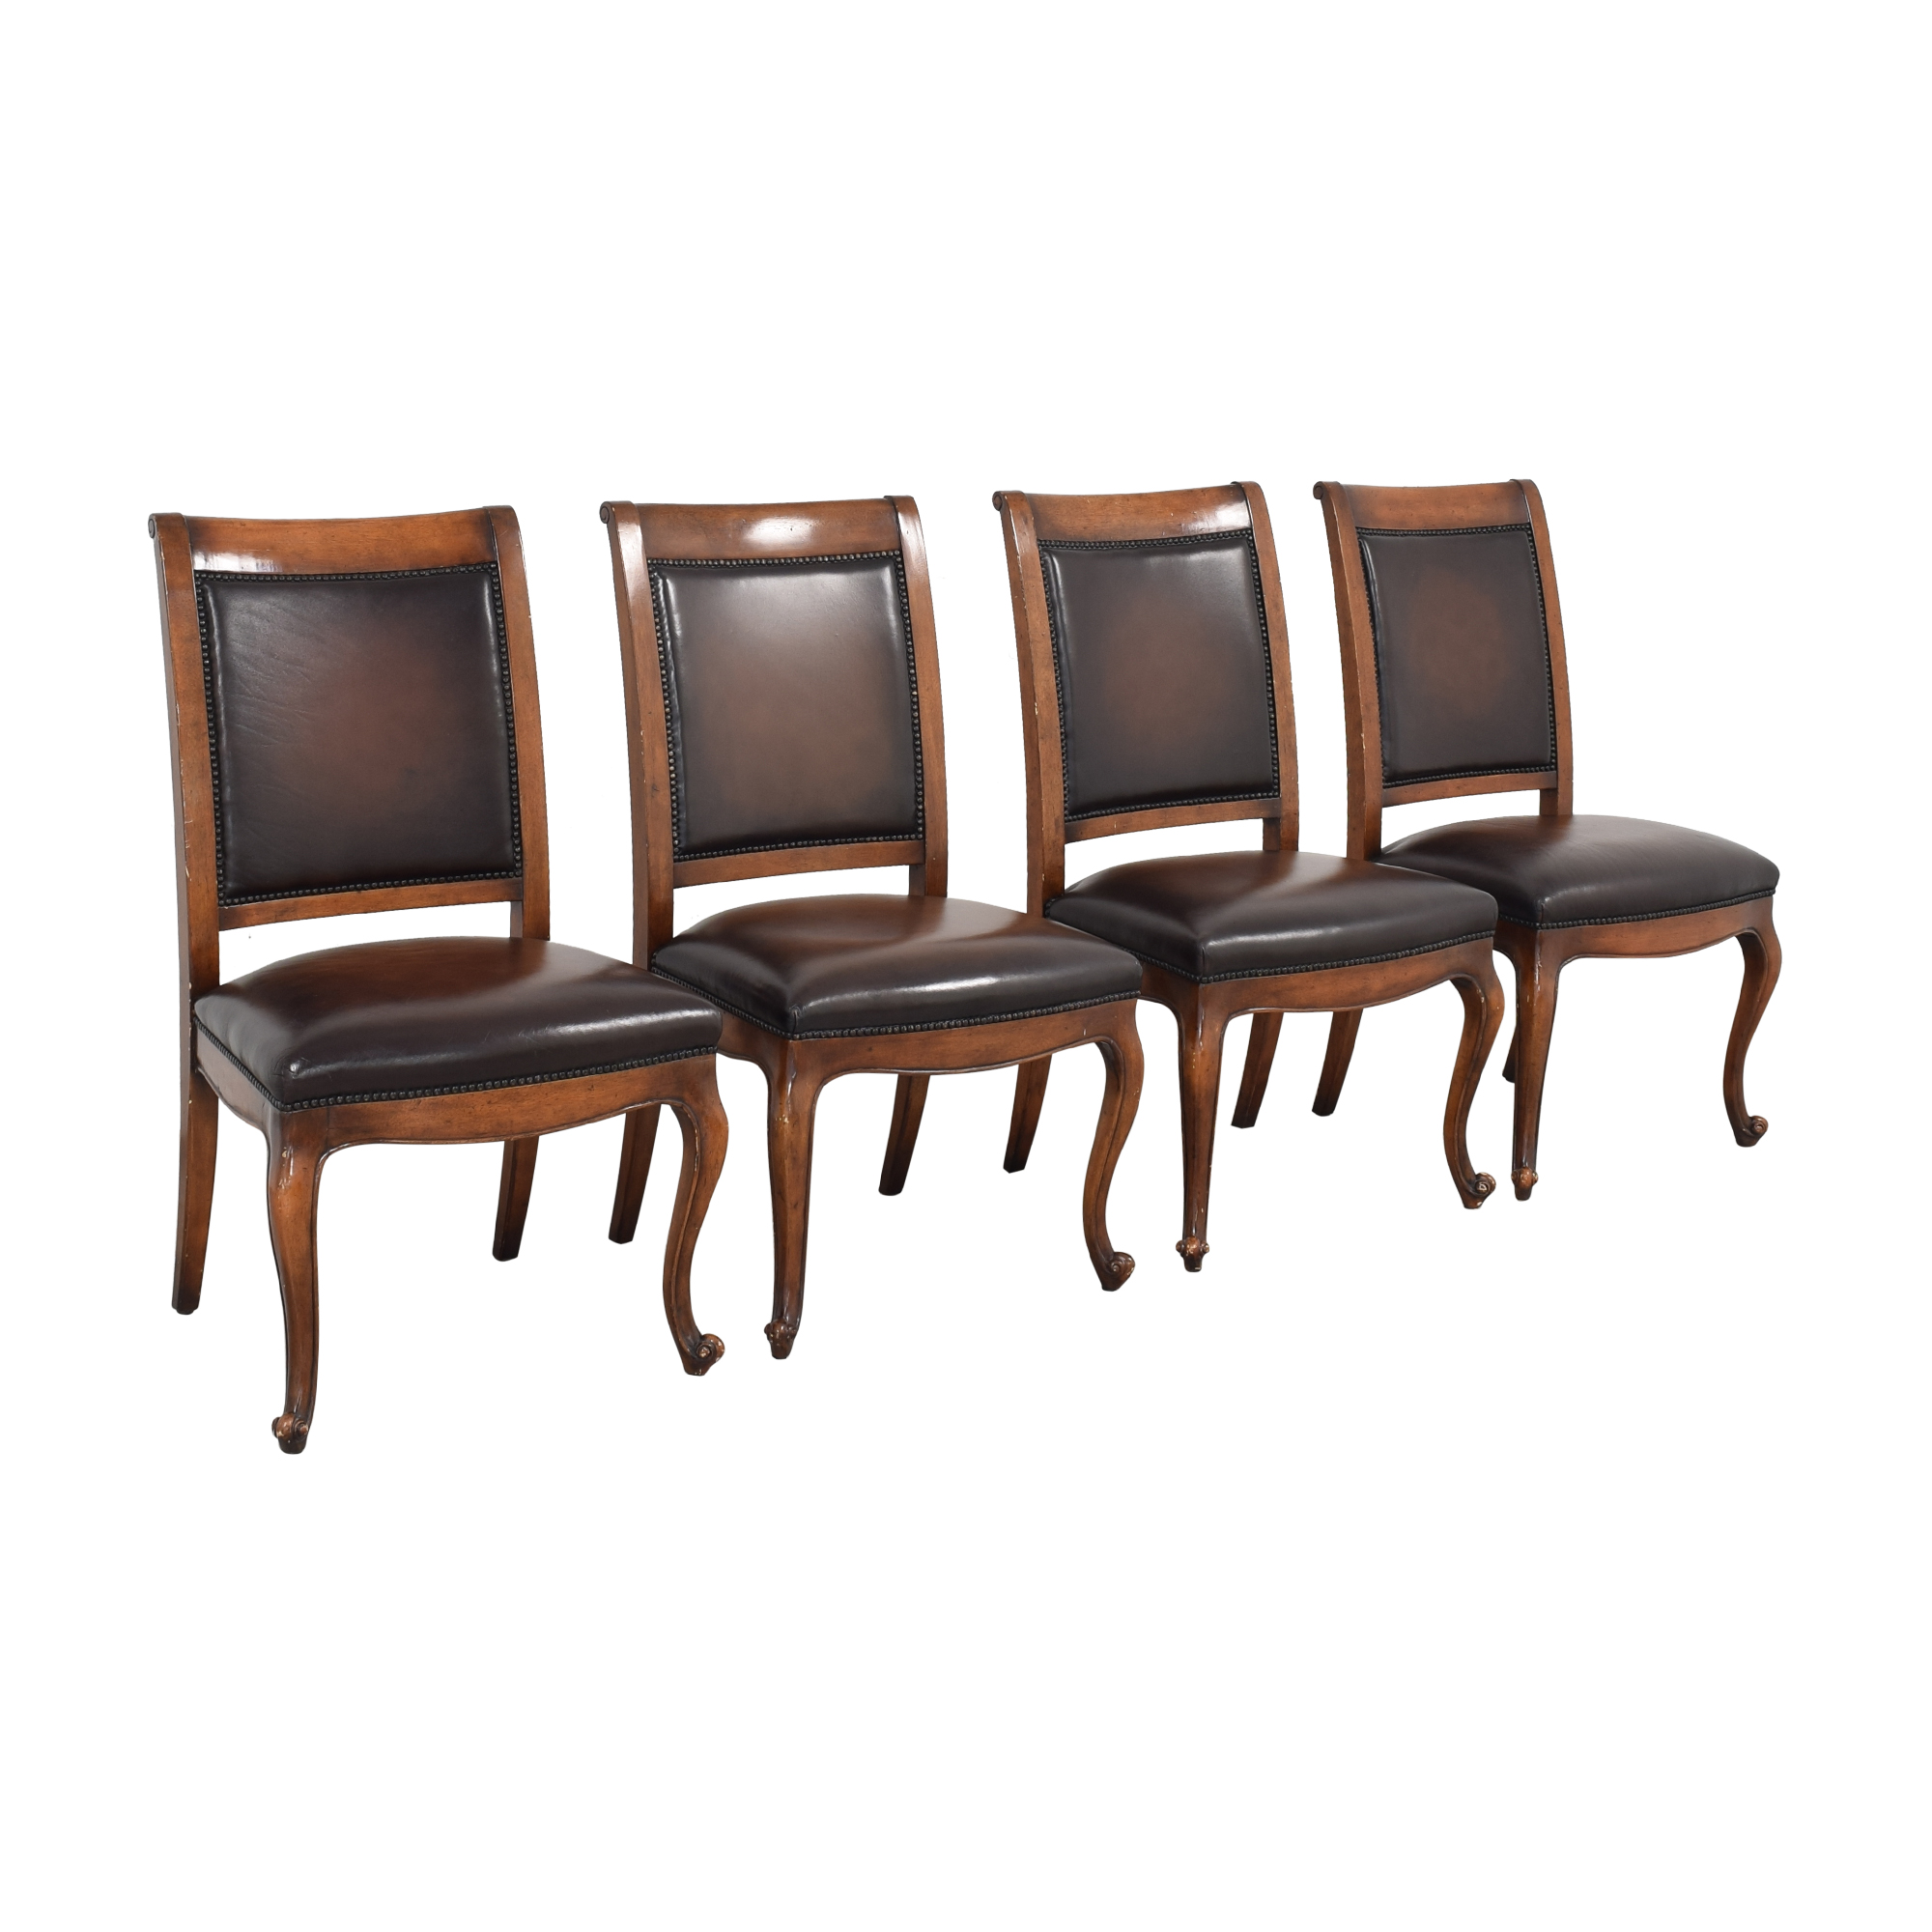 Theodore Alexander Theodore Alexander Dining Chairs Chairs